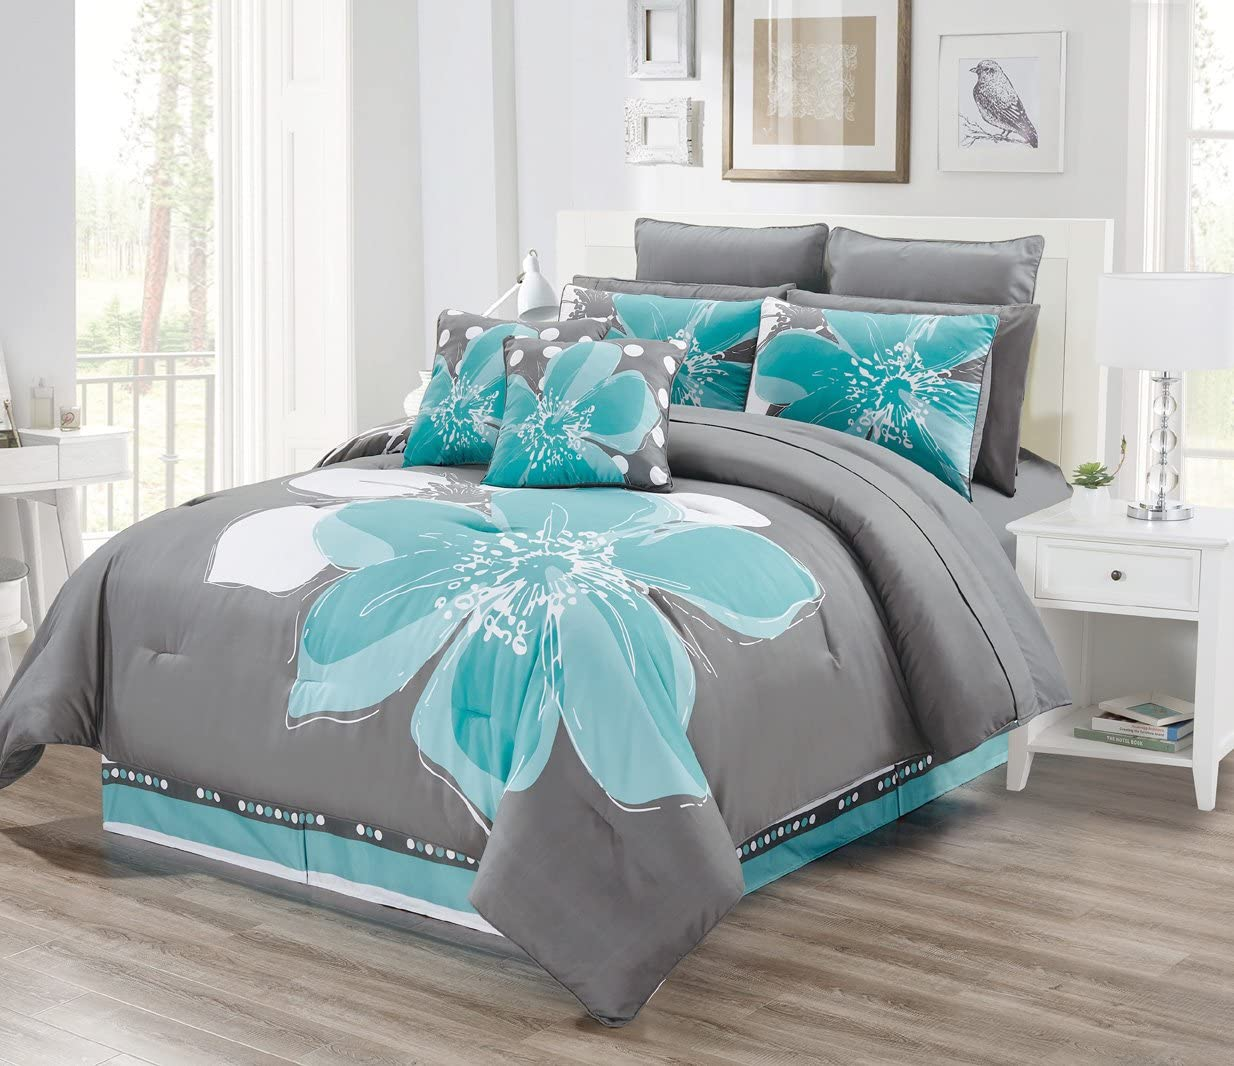 12 - Piece Aqua Blue, Grey, White Floral Bed-in-a-Bag California Cal King Size Bedding + Sheets + Accent Pillows Comforter Set